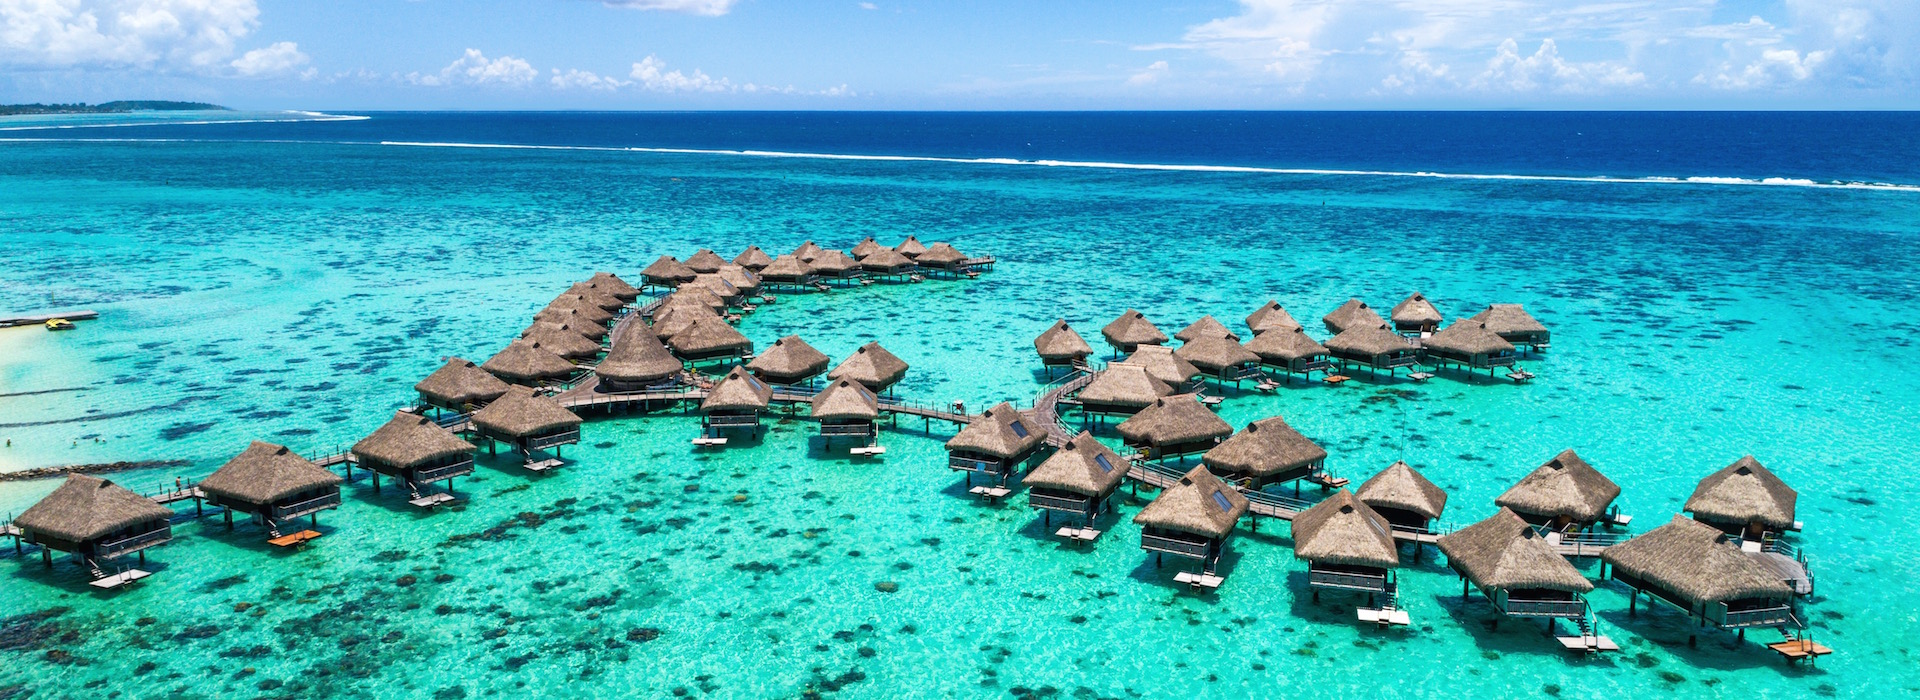 5 Things You Didn't Know About Tahiti